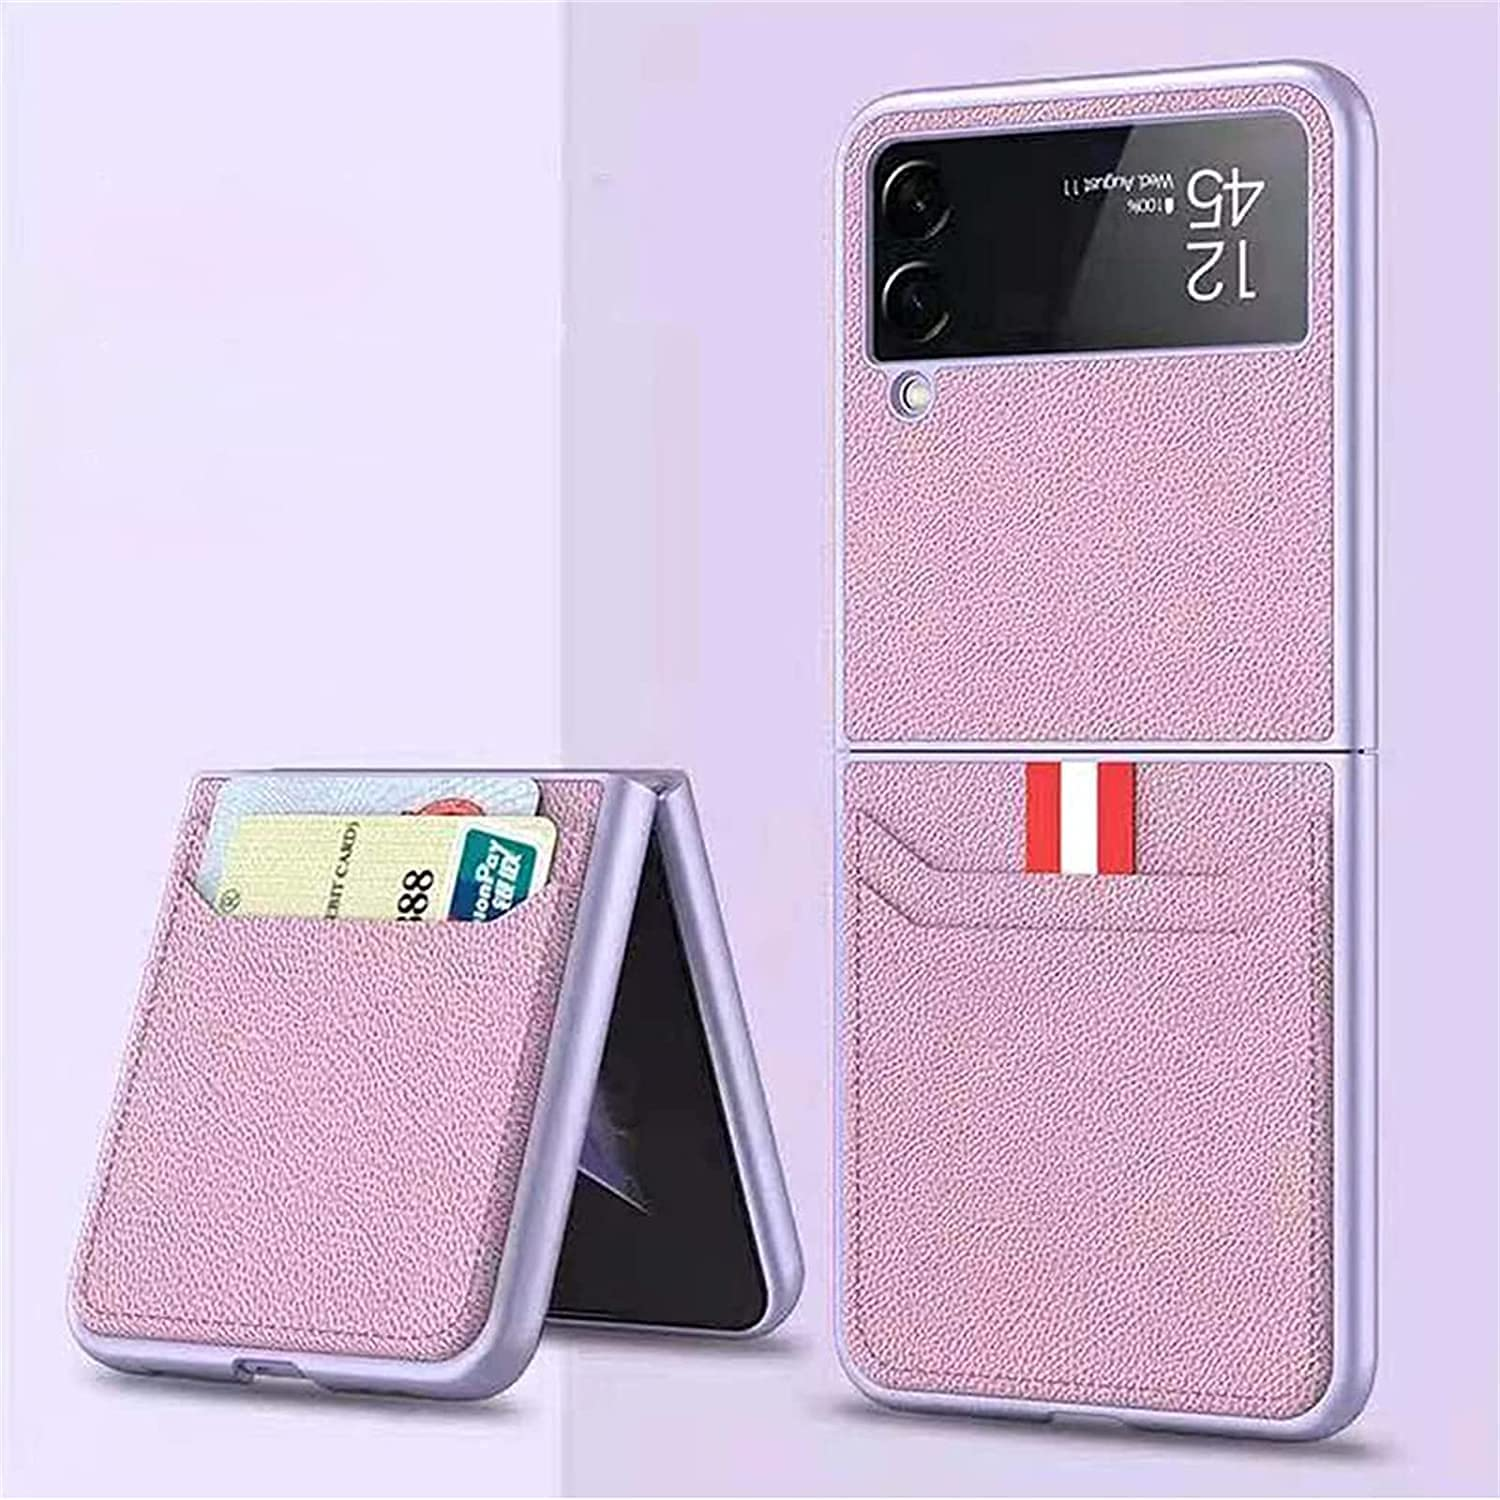 for Samsung Galaxy Z Flip 3 5G Case, Shockproof Leather Lightweight Cover Full Protective Cases with Wallet Card Suitable for Samsung Galaxy Z Flip 3 5G (Pink)